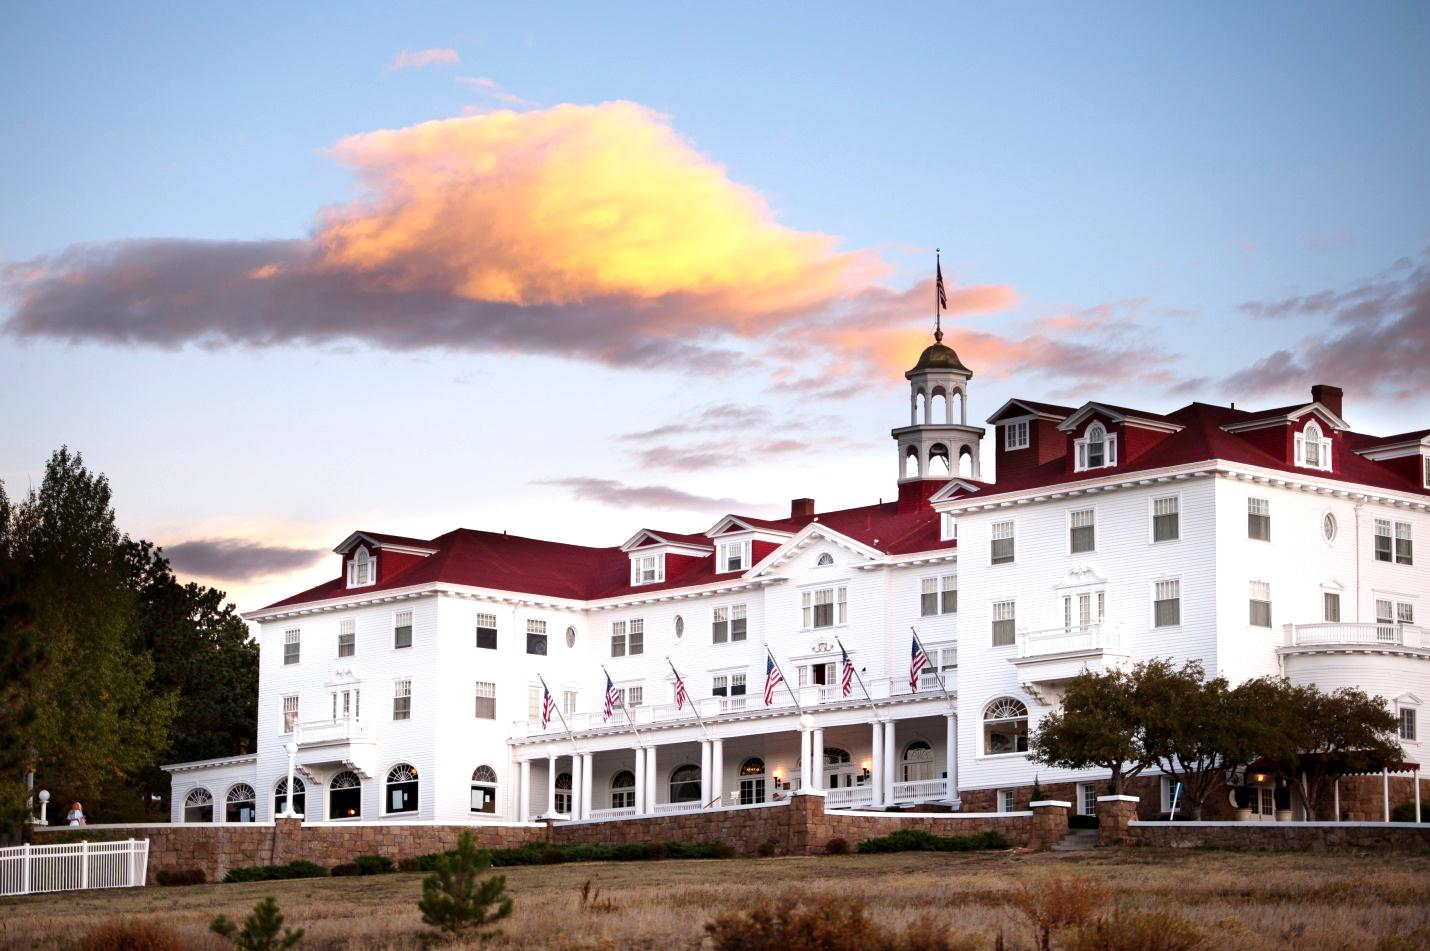 12 Hotels In The Rocky Mountains That Transform Winter Into A Wonderland